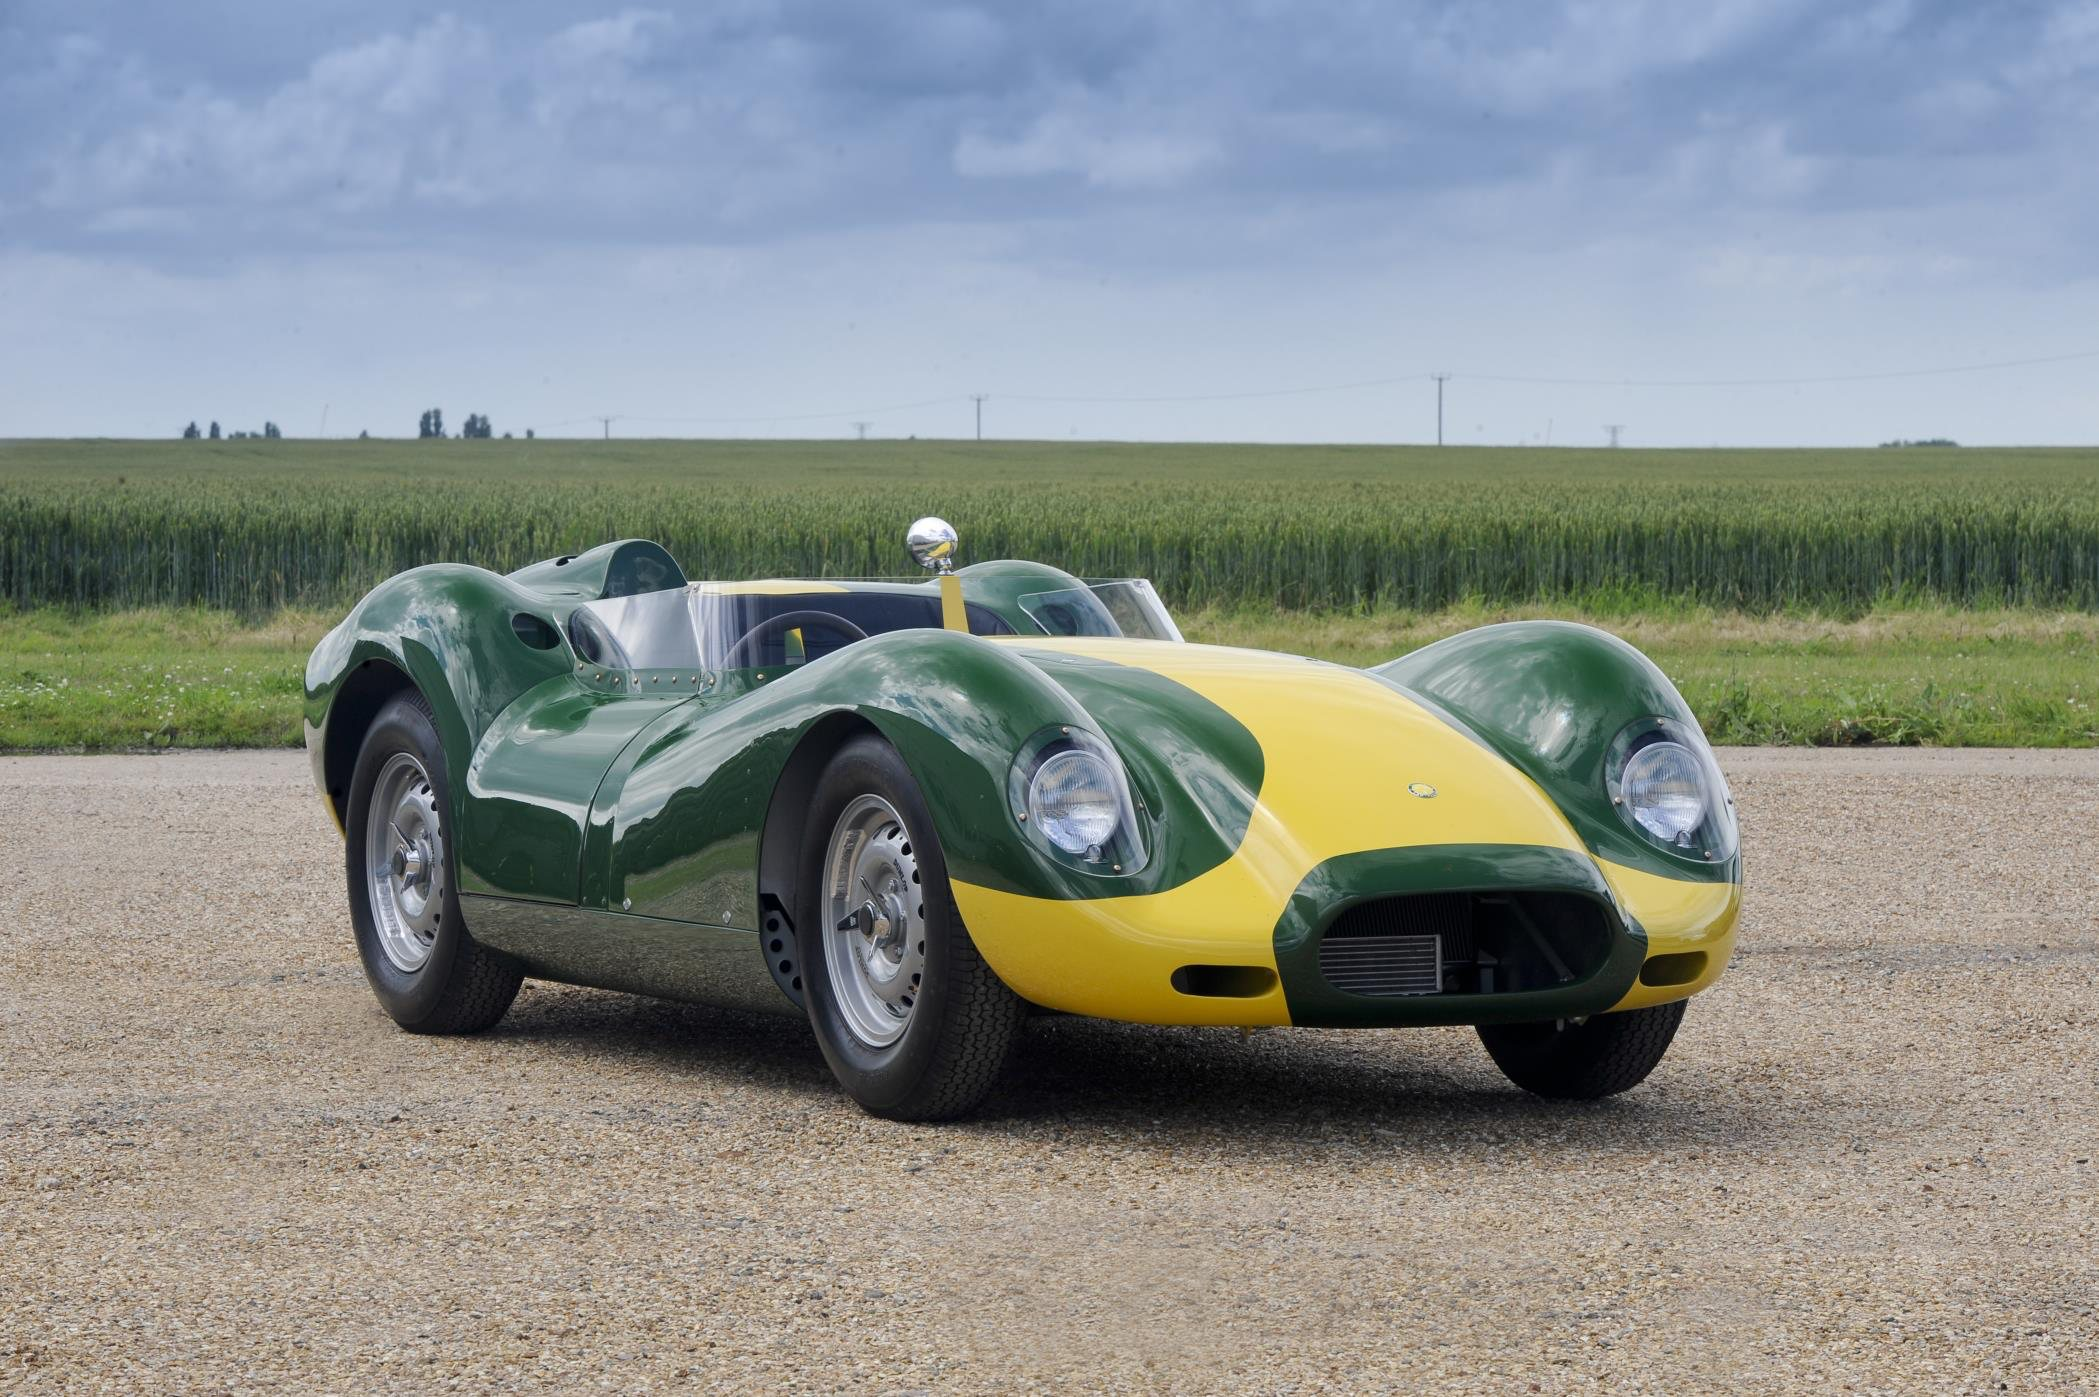 Lister Knobby Sir Stirling Moss © Michael Bailie 16-2195